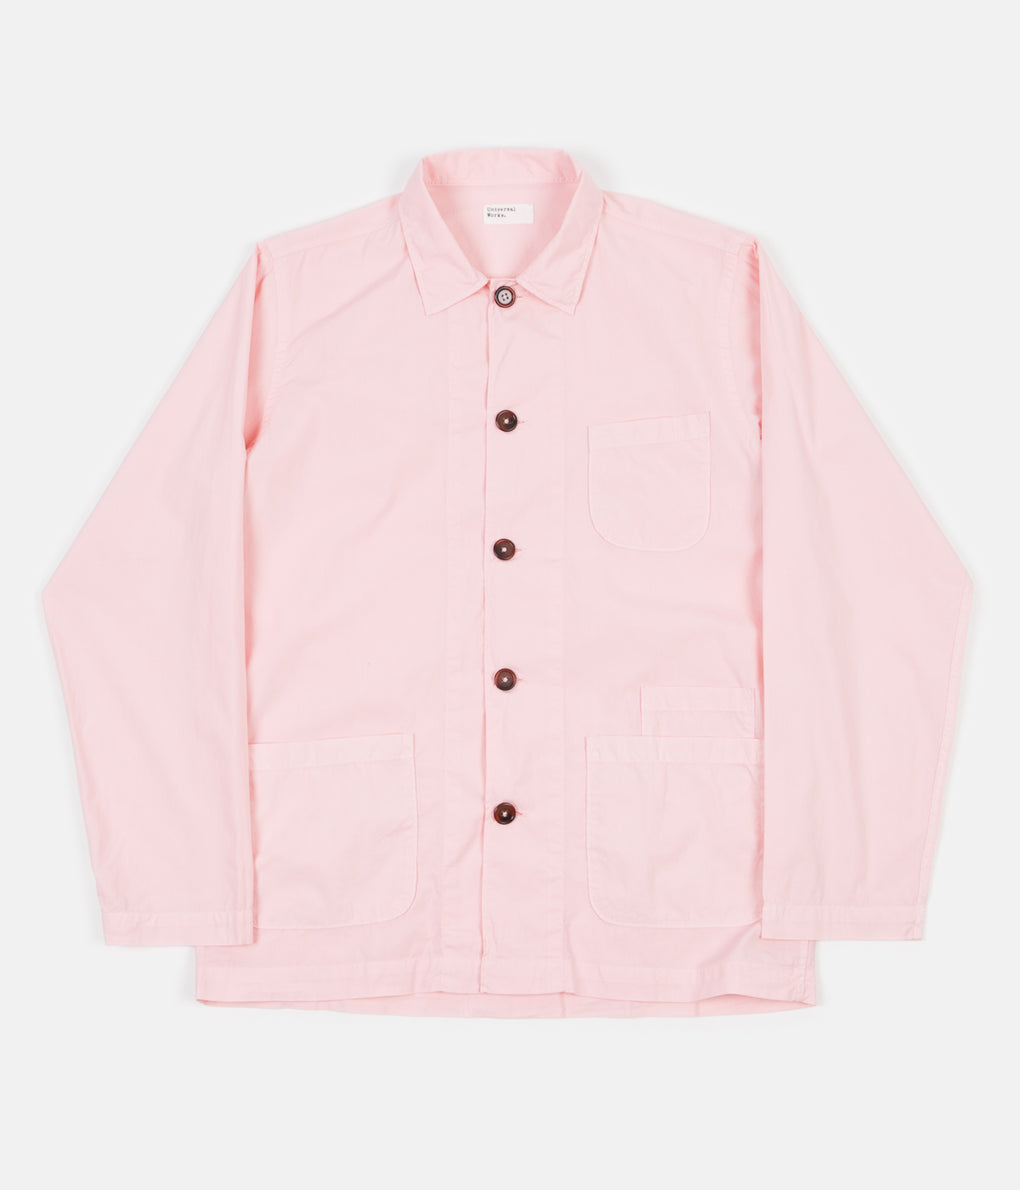 Universal Works Bakers Overshirt - Strawberry